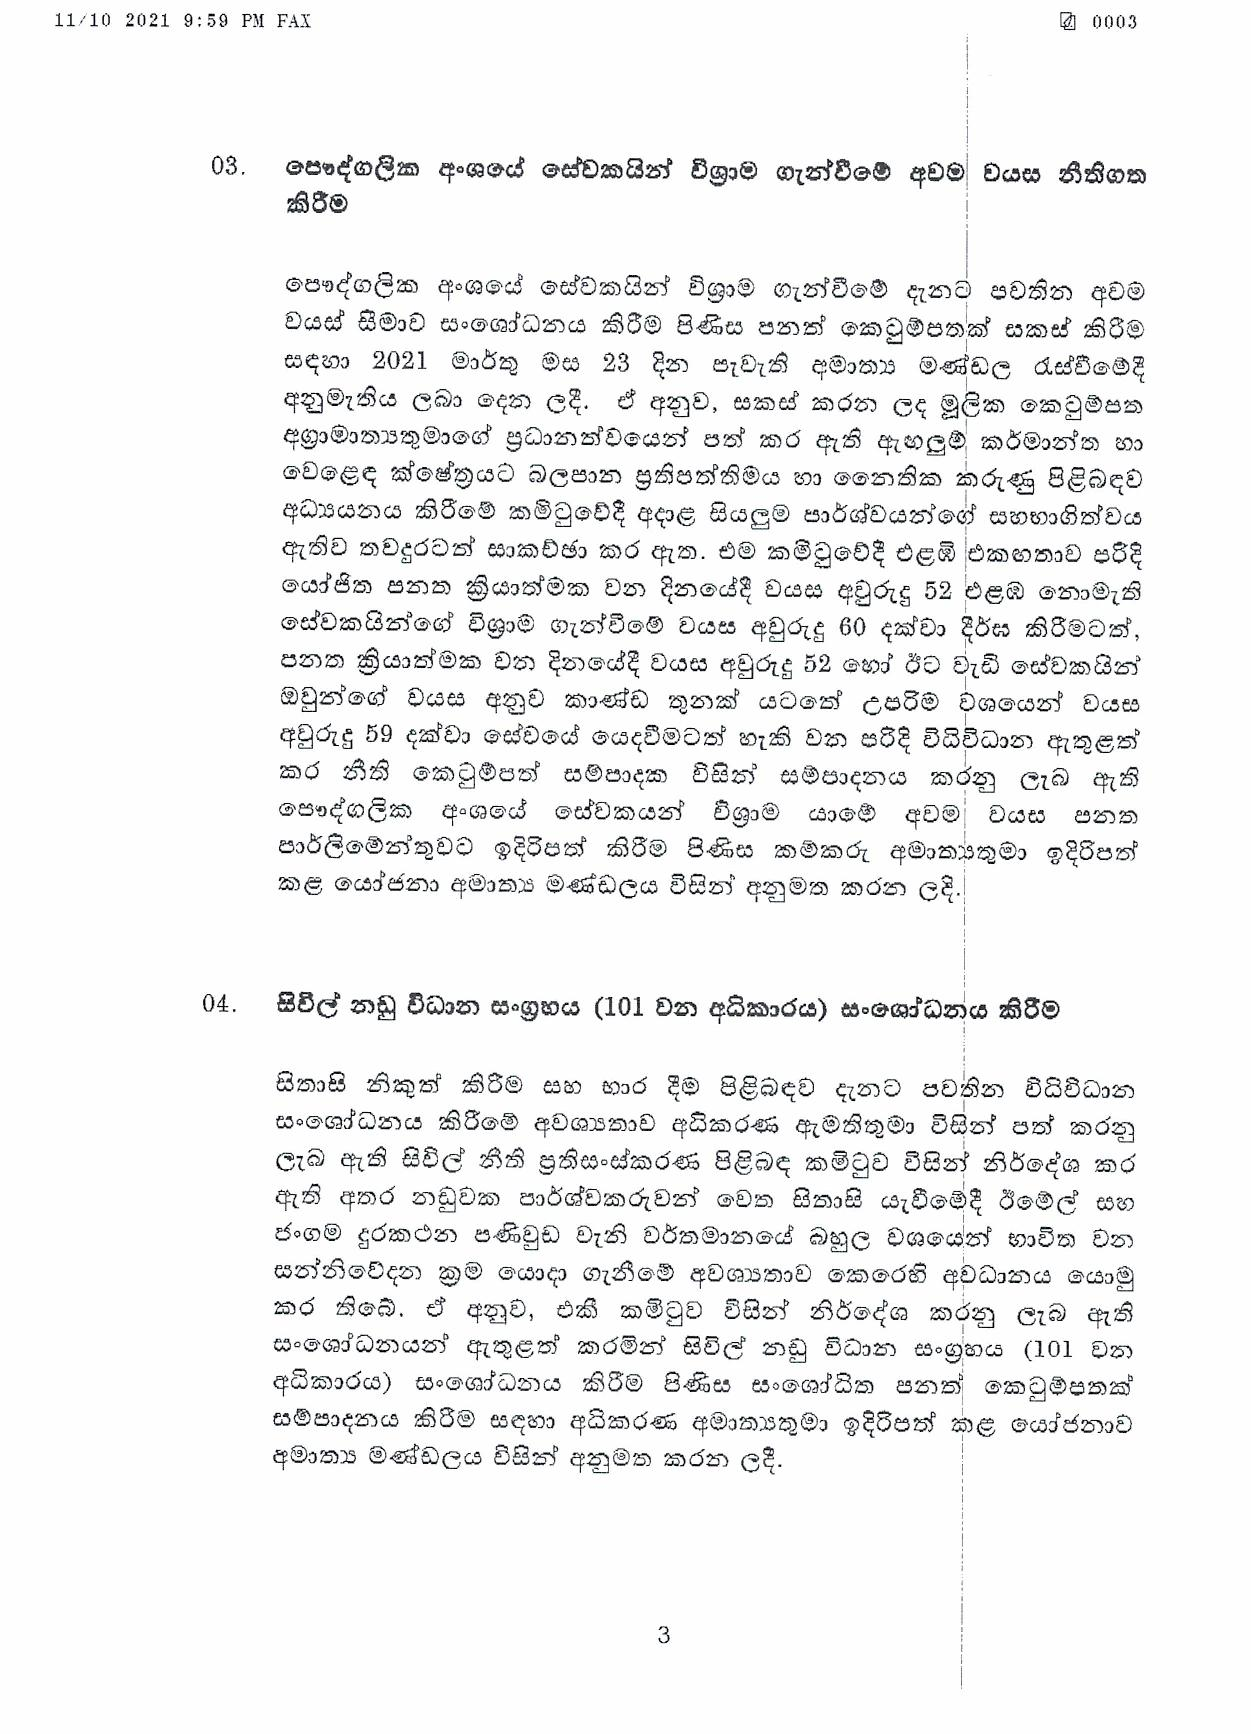 Cabinet Decisions on 11.10.2021 page 003